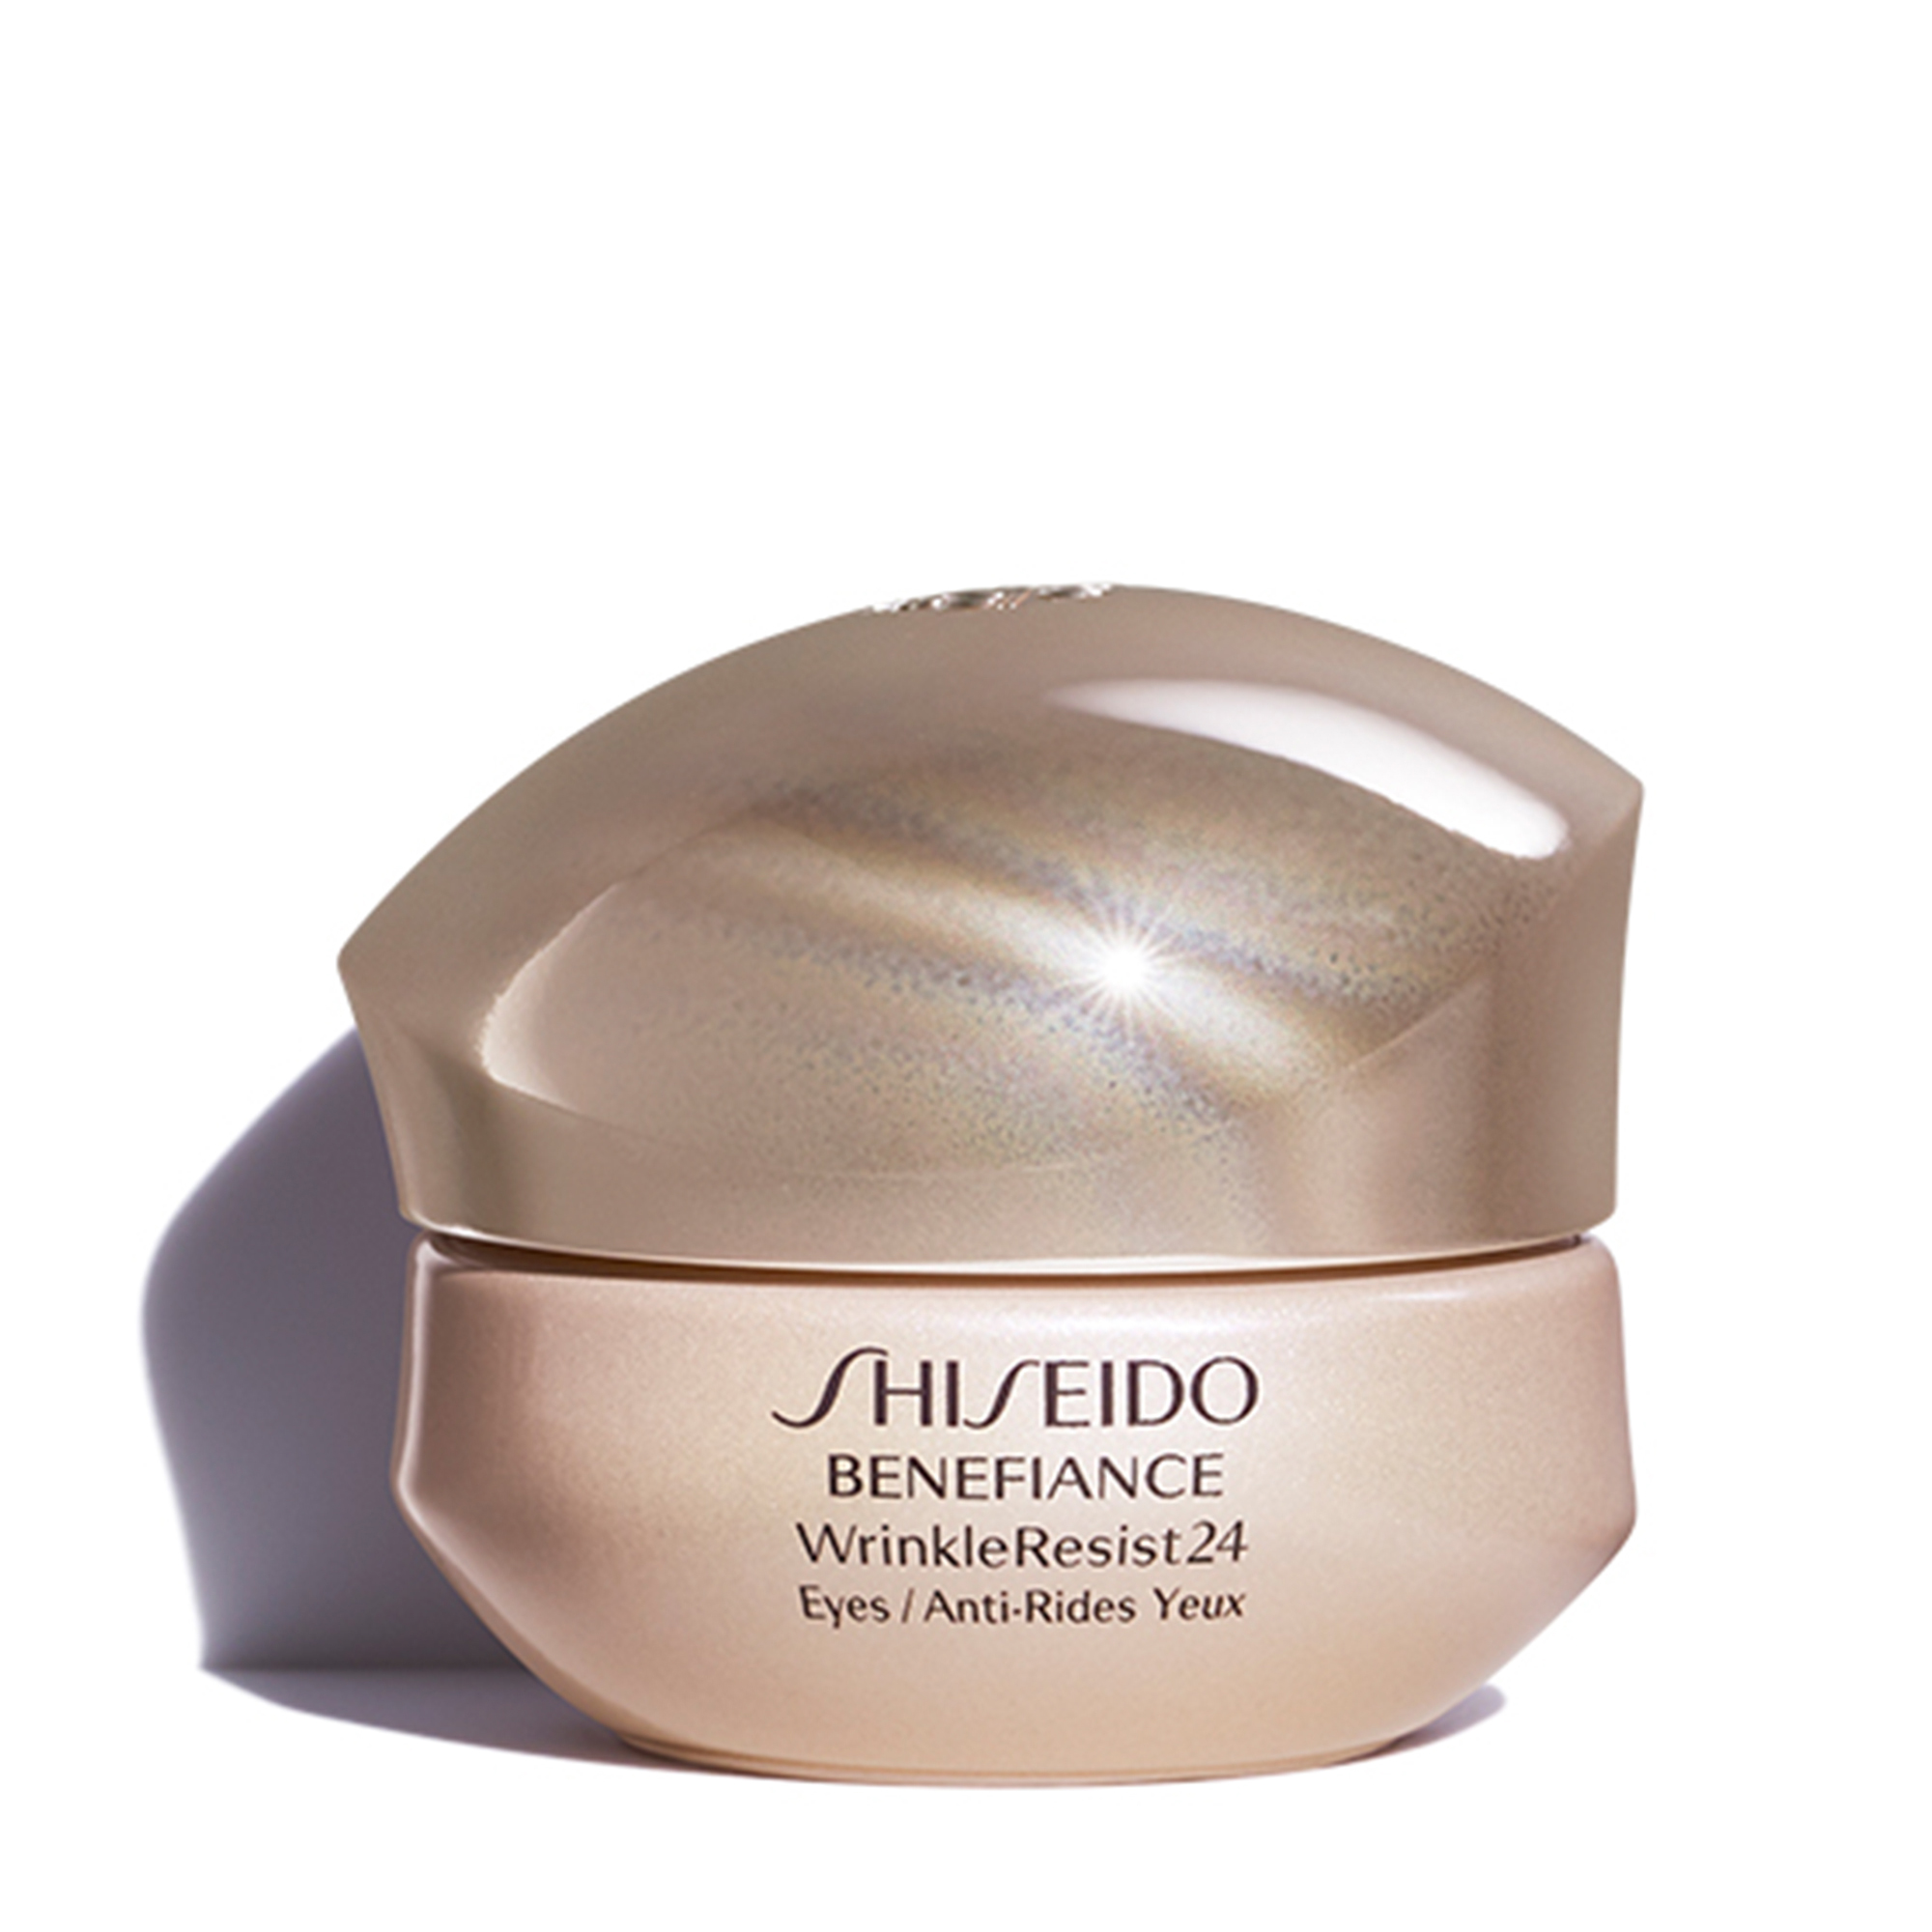 After Sun Intensive Recovery Shiseido 40 Ml Crease-Resistance